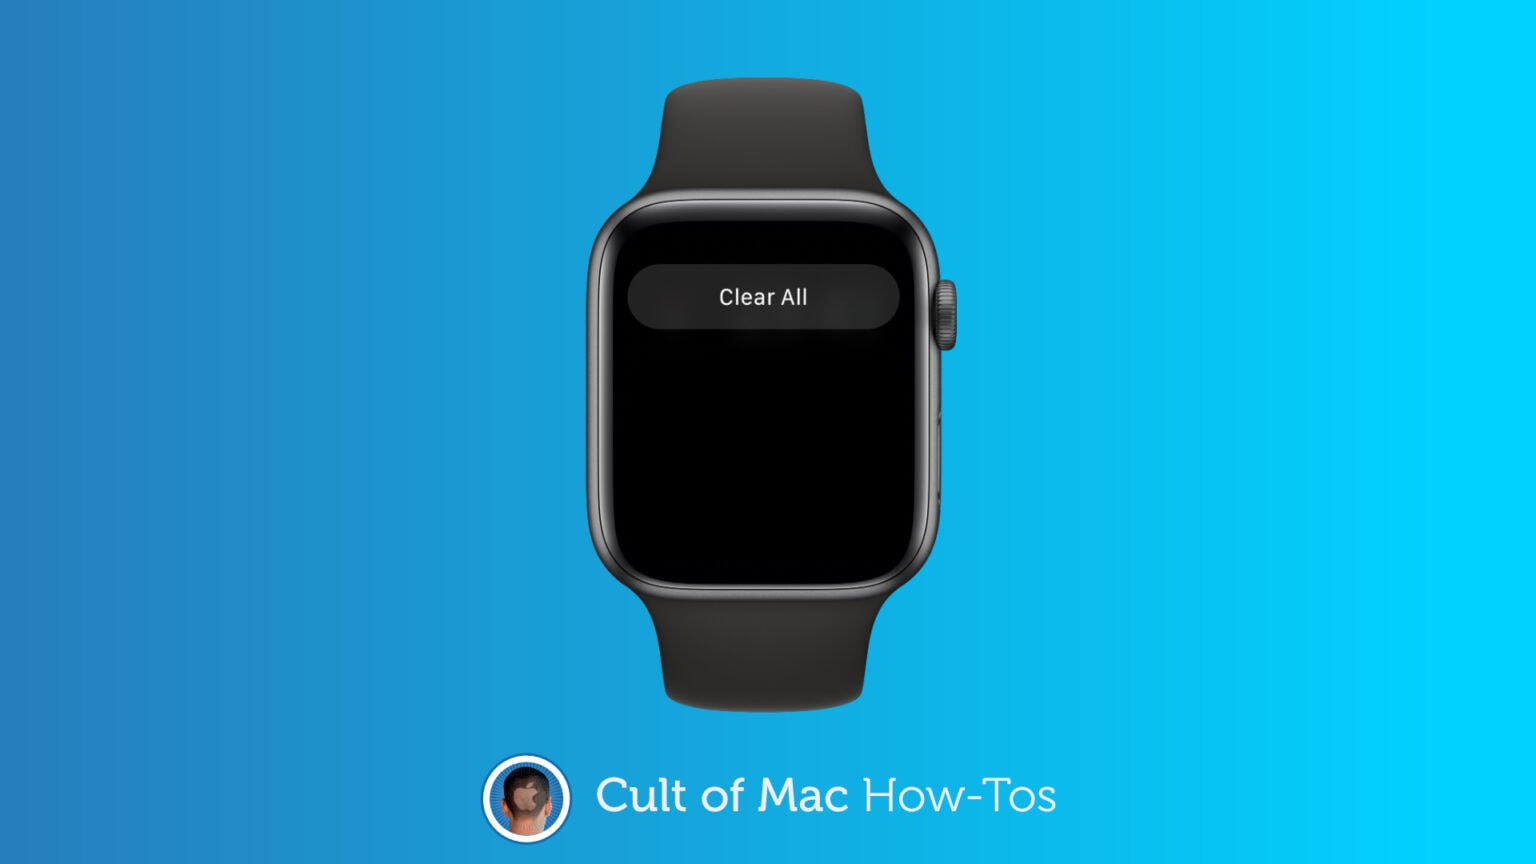 Clear Apple Watch notifications in watchOS 7